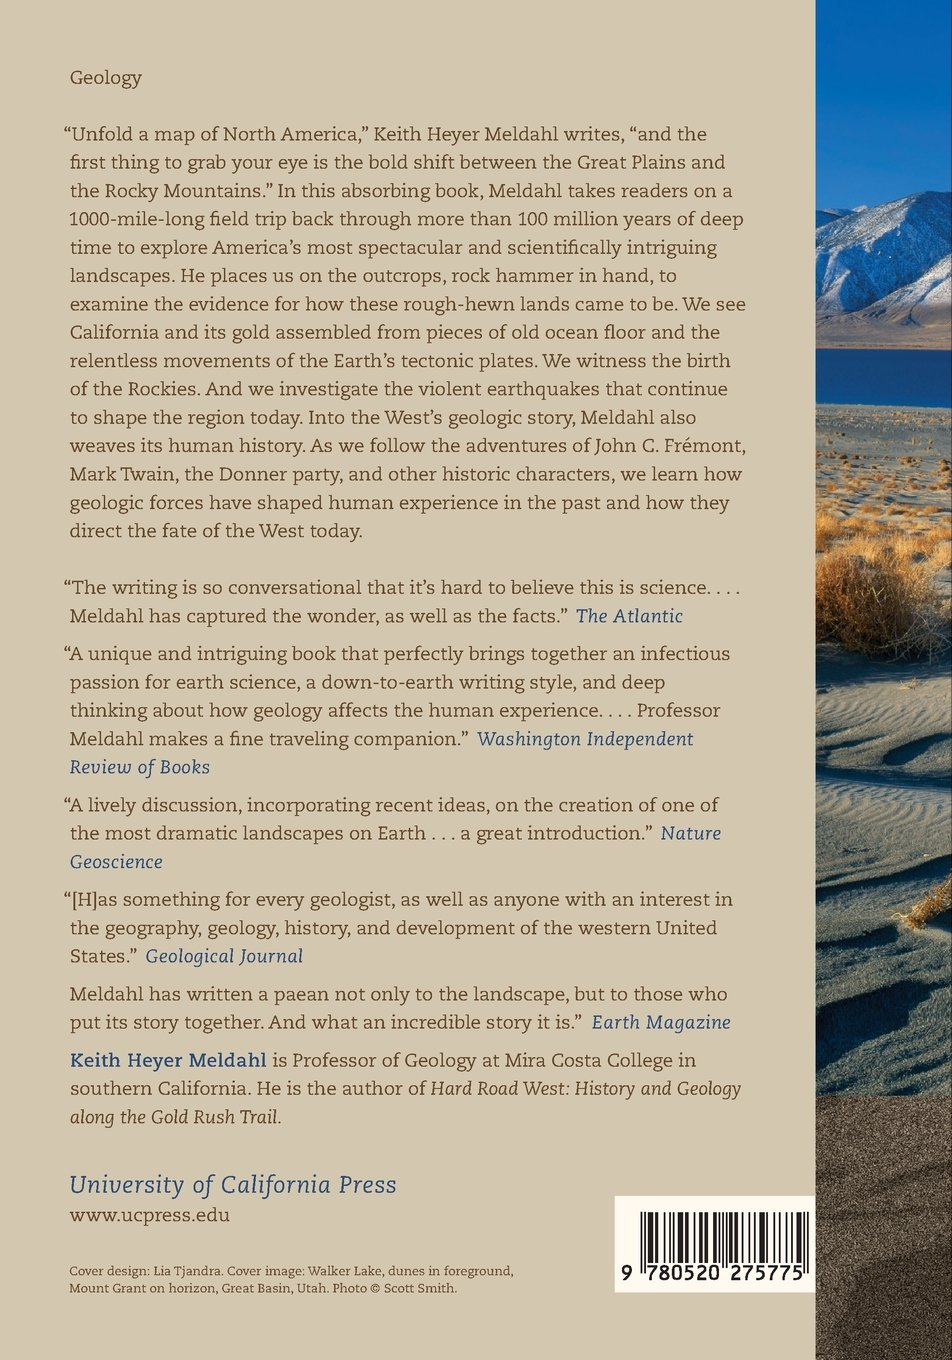 Amazon Com Rough Hewn Land A Geologic Journey From California To The Rocky Mountains 9780520275775 Keith Heyer Meldahl Books